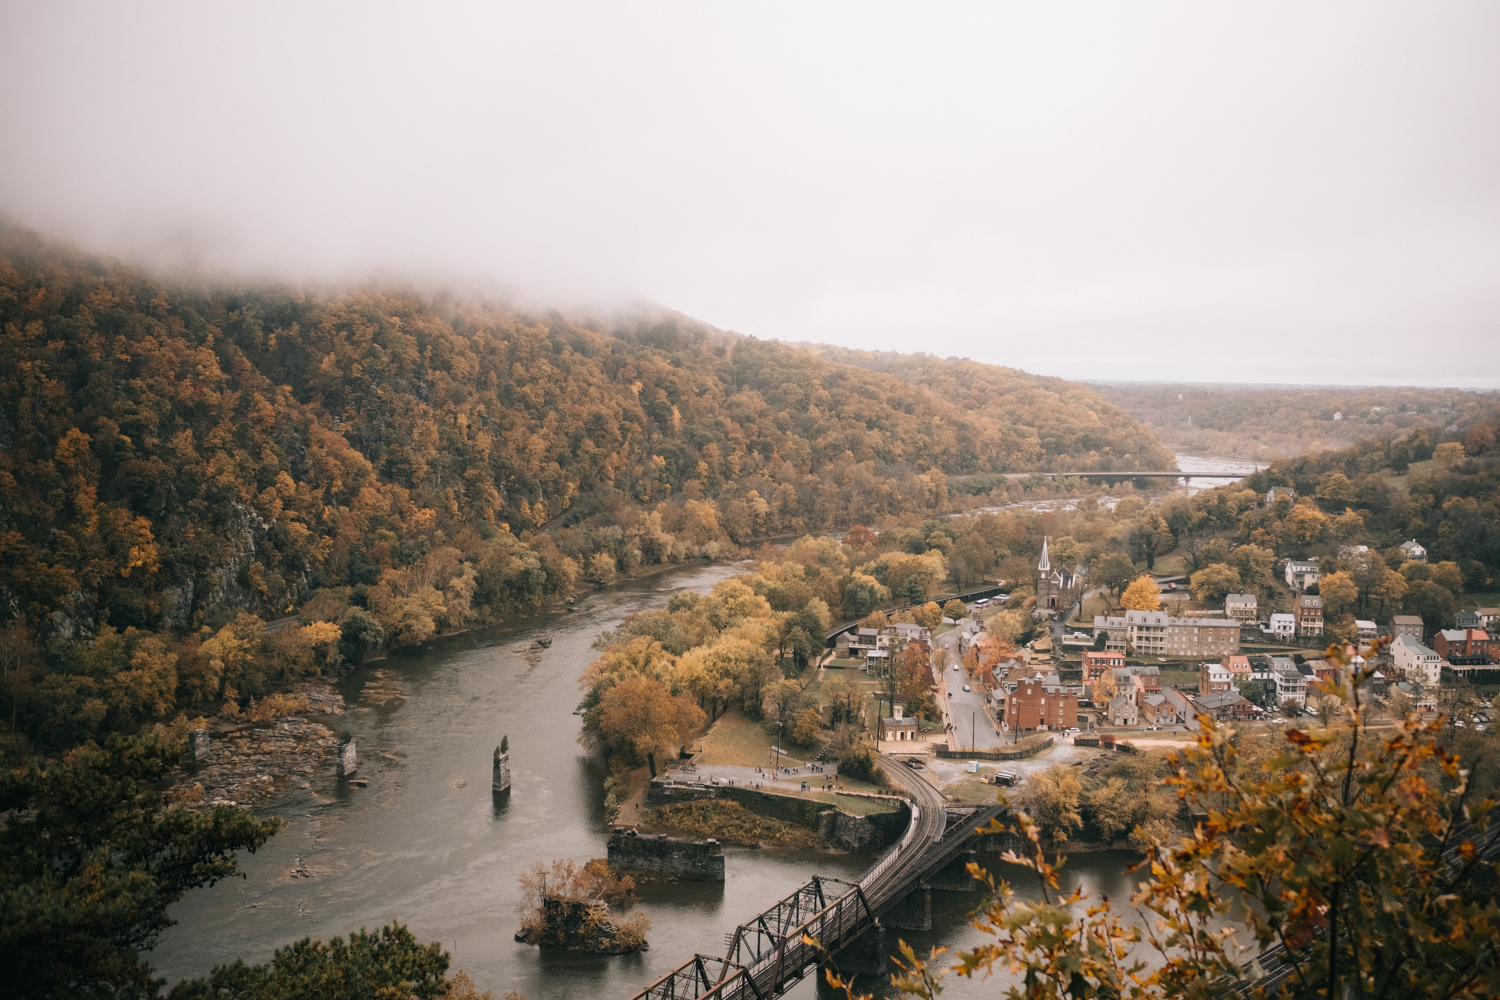 harpers ferry maryland heights autumn foggy day